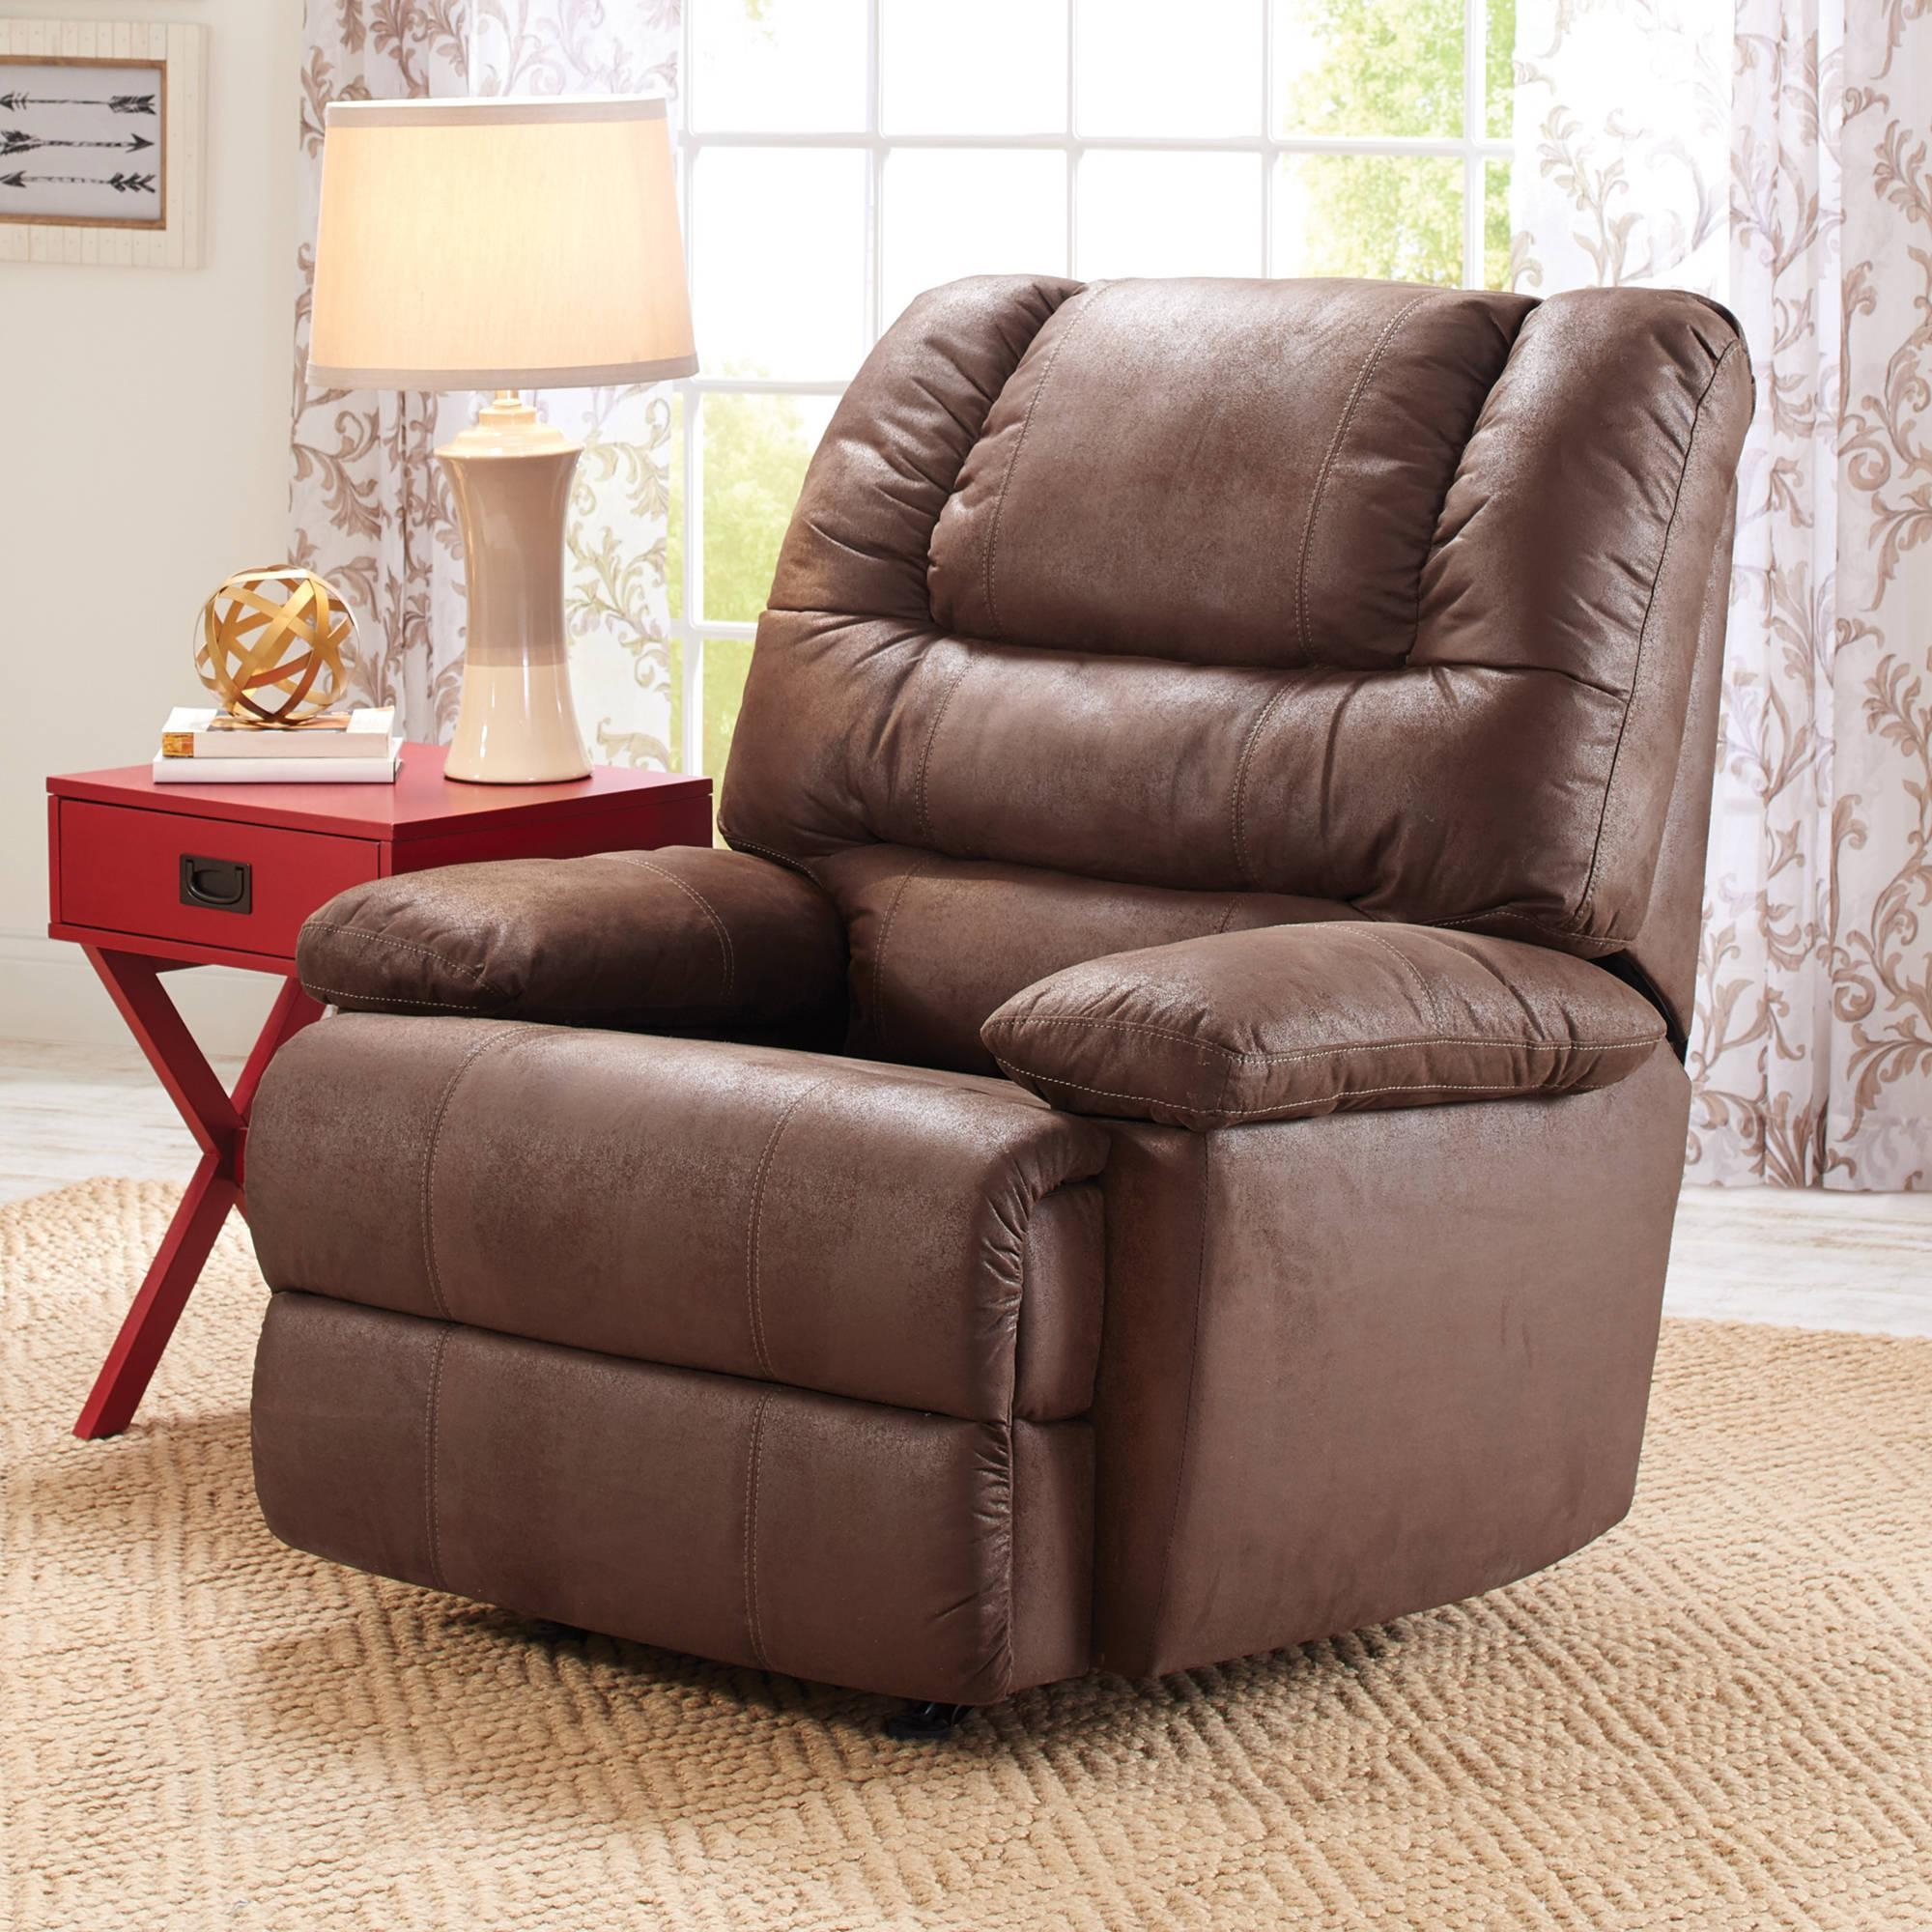 Cheap Living Room Furniture Online Living Room Design And Living Throughout Cheap Sofa Chairs (View 6 of 20)